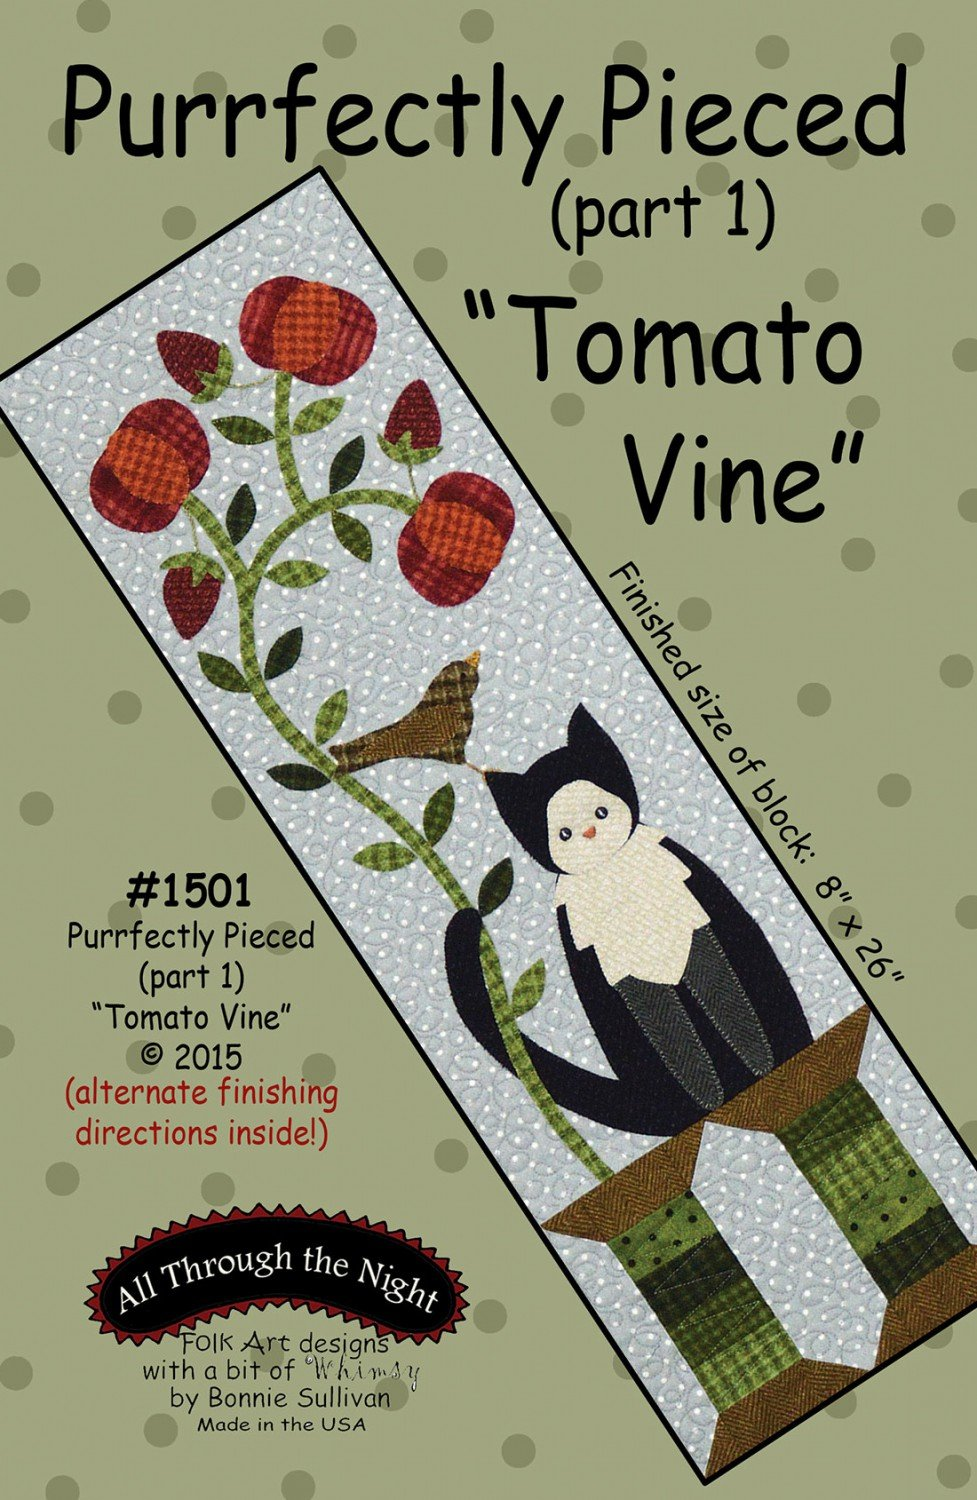 Purrfectly Pieced 1 Tomato Vine